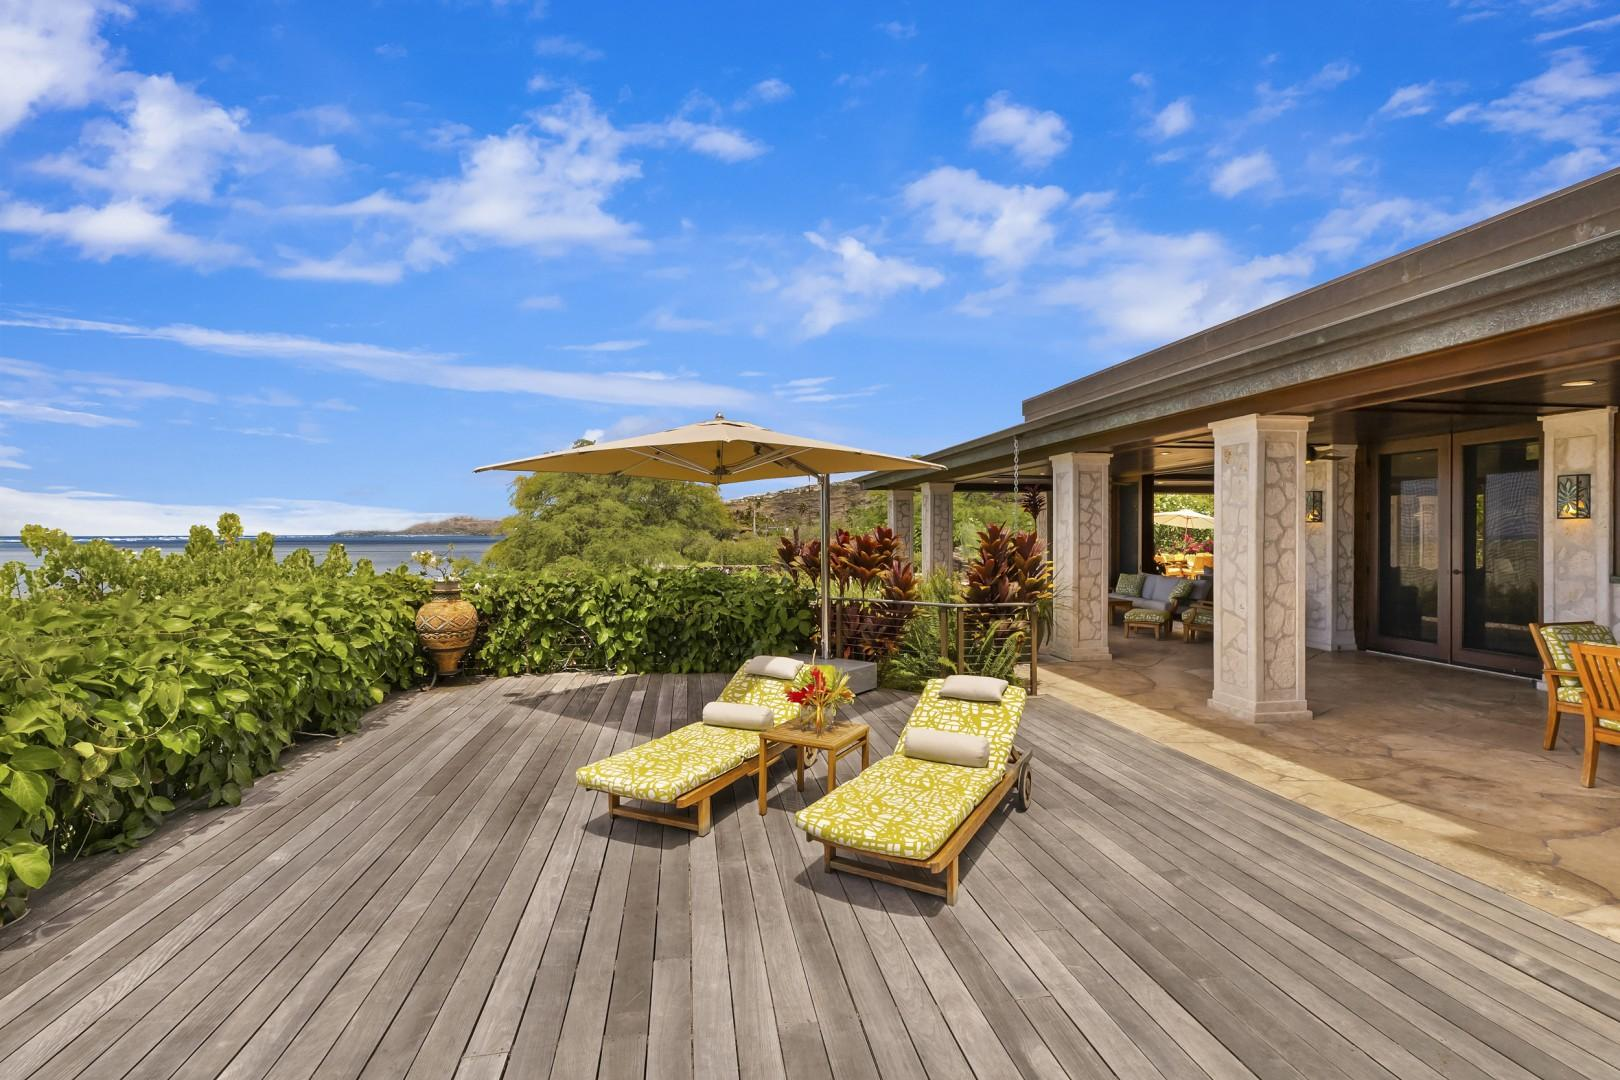 Private Sun Deck connects to spacious covered lanais